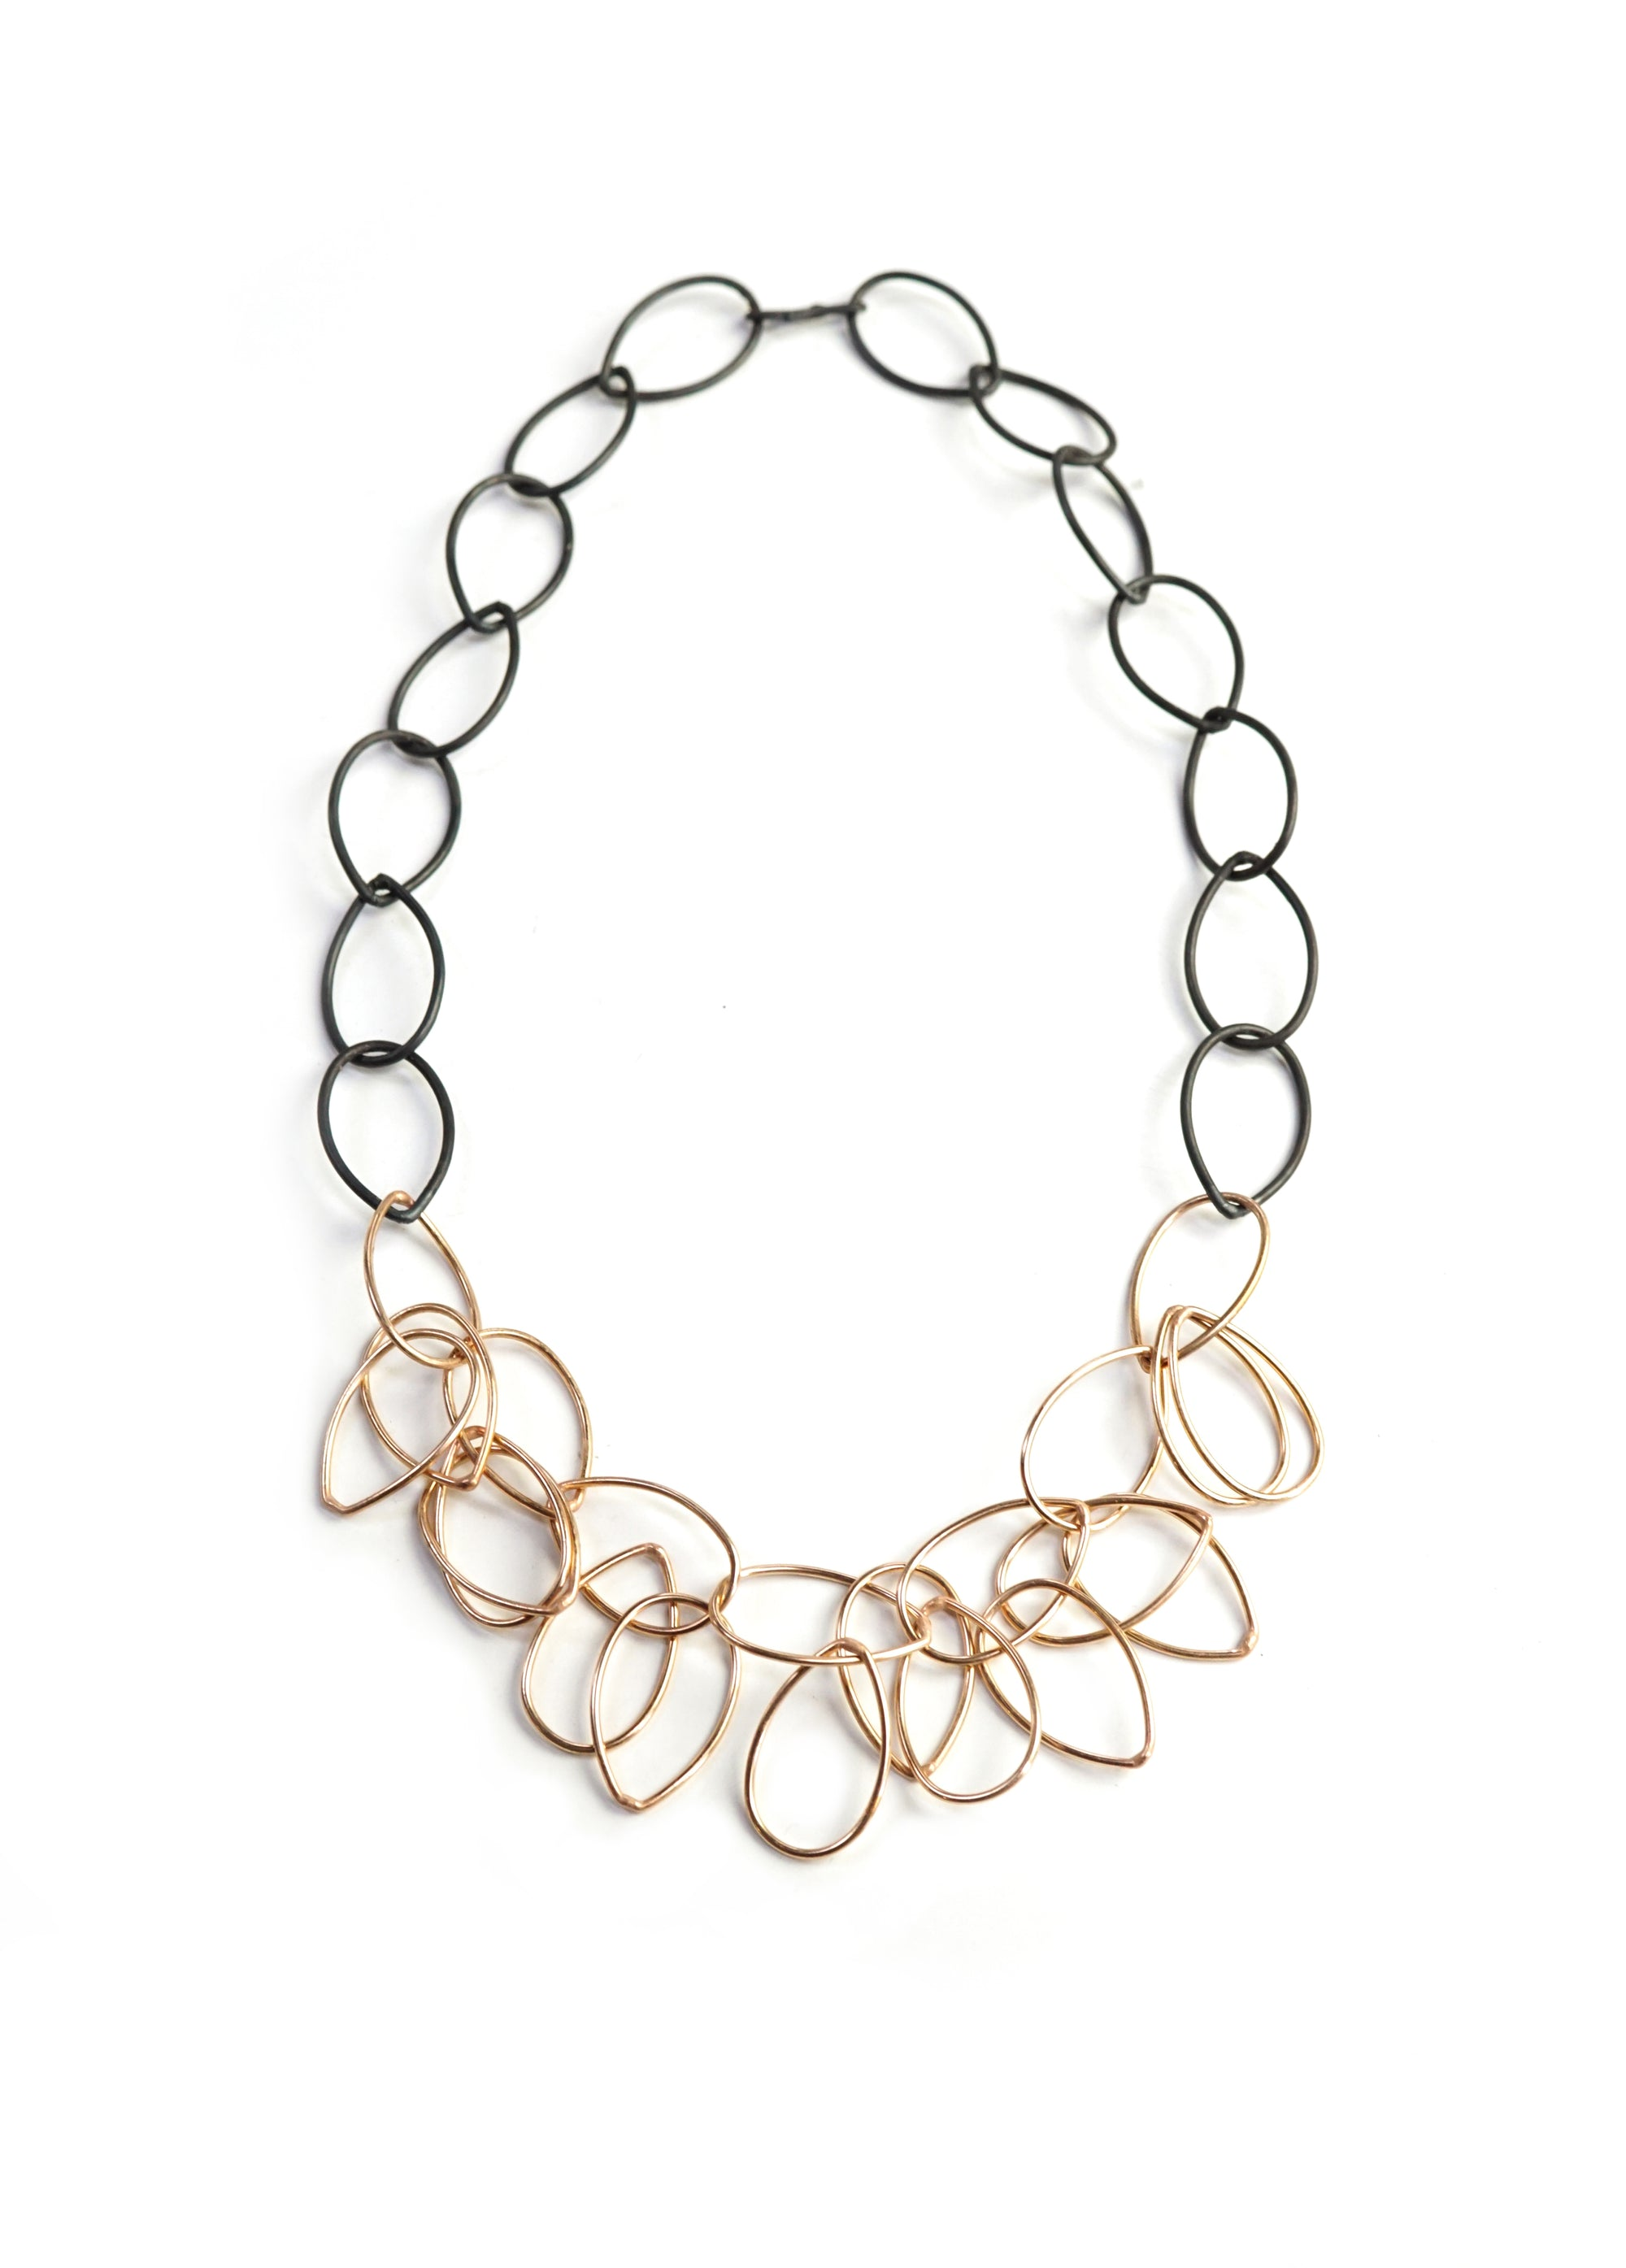 Ayanna necklace - sample sale